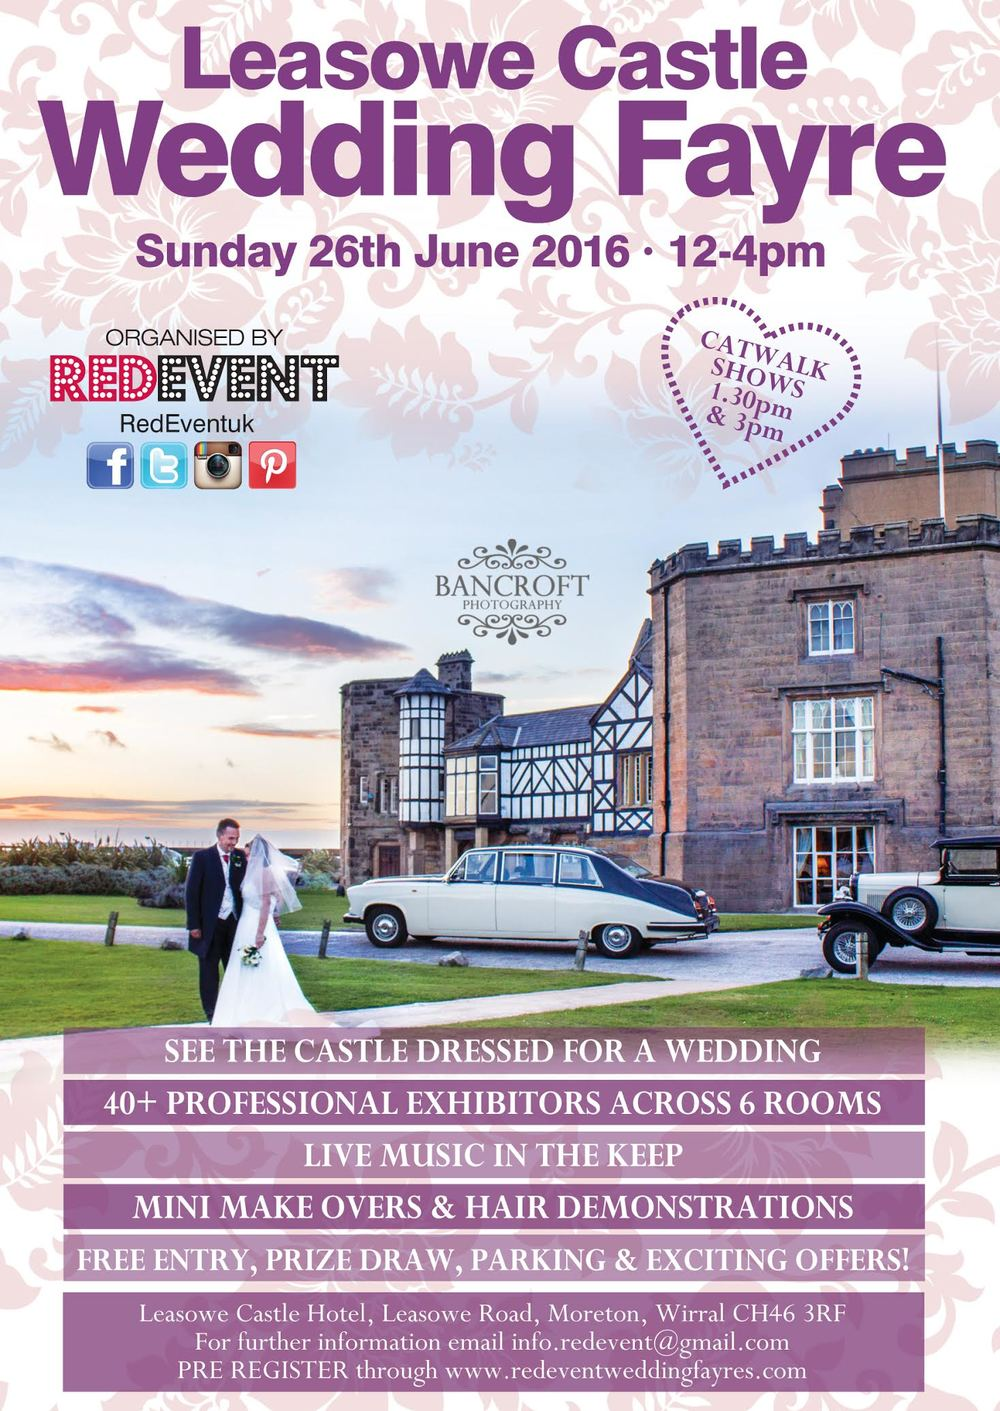 Leasowe Castle Wedding Fayre